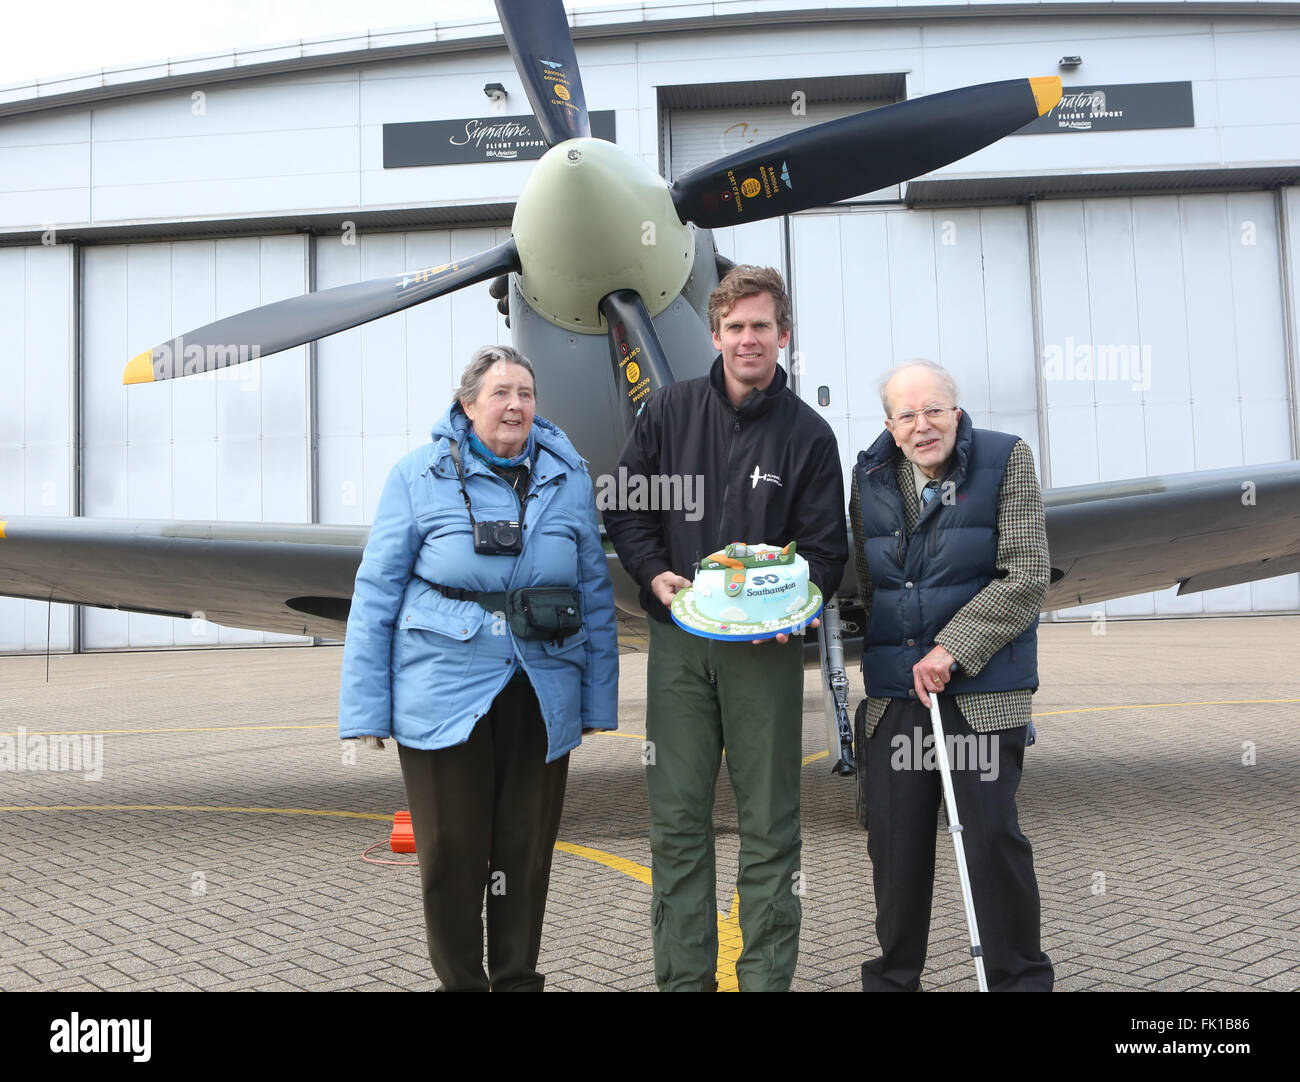 Southampton, Hampshire, UK. 5th March, 2016. GV at Southampton Airport A flypast to mark the 80th anniversary of - Stock Image